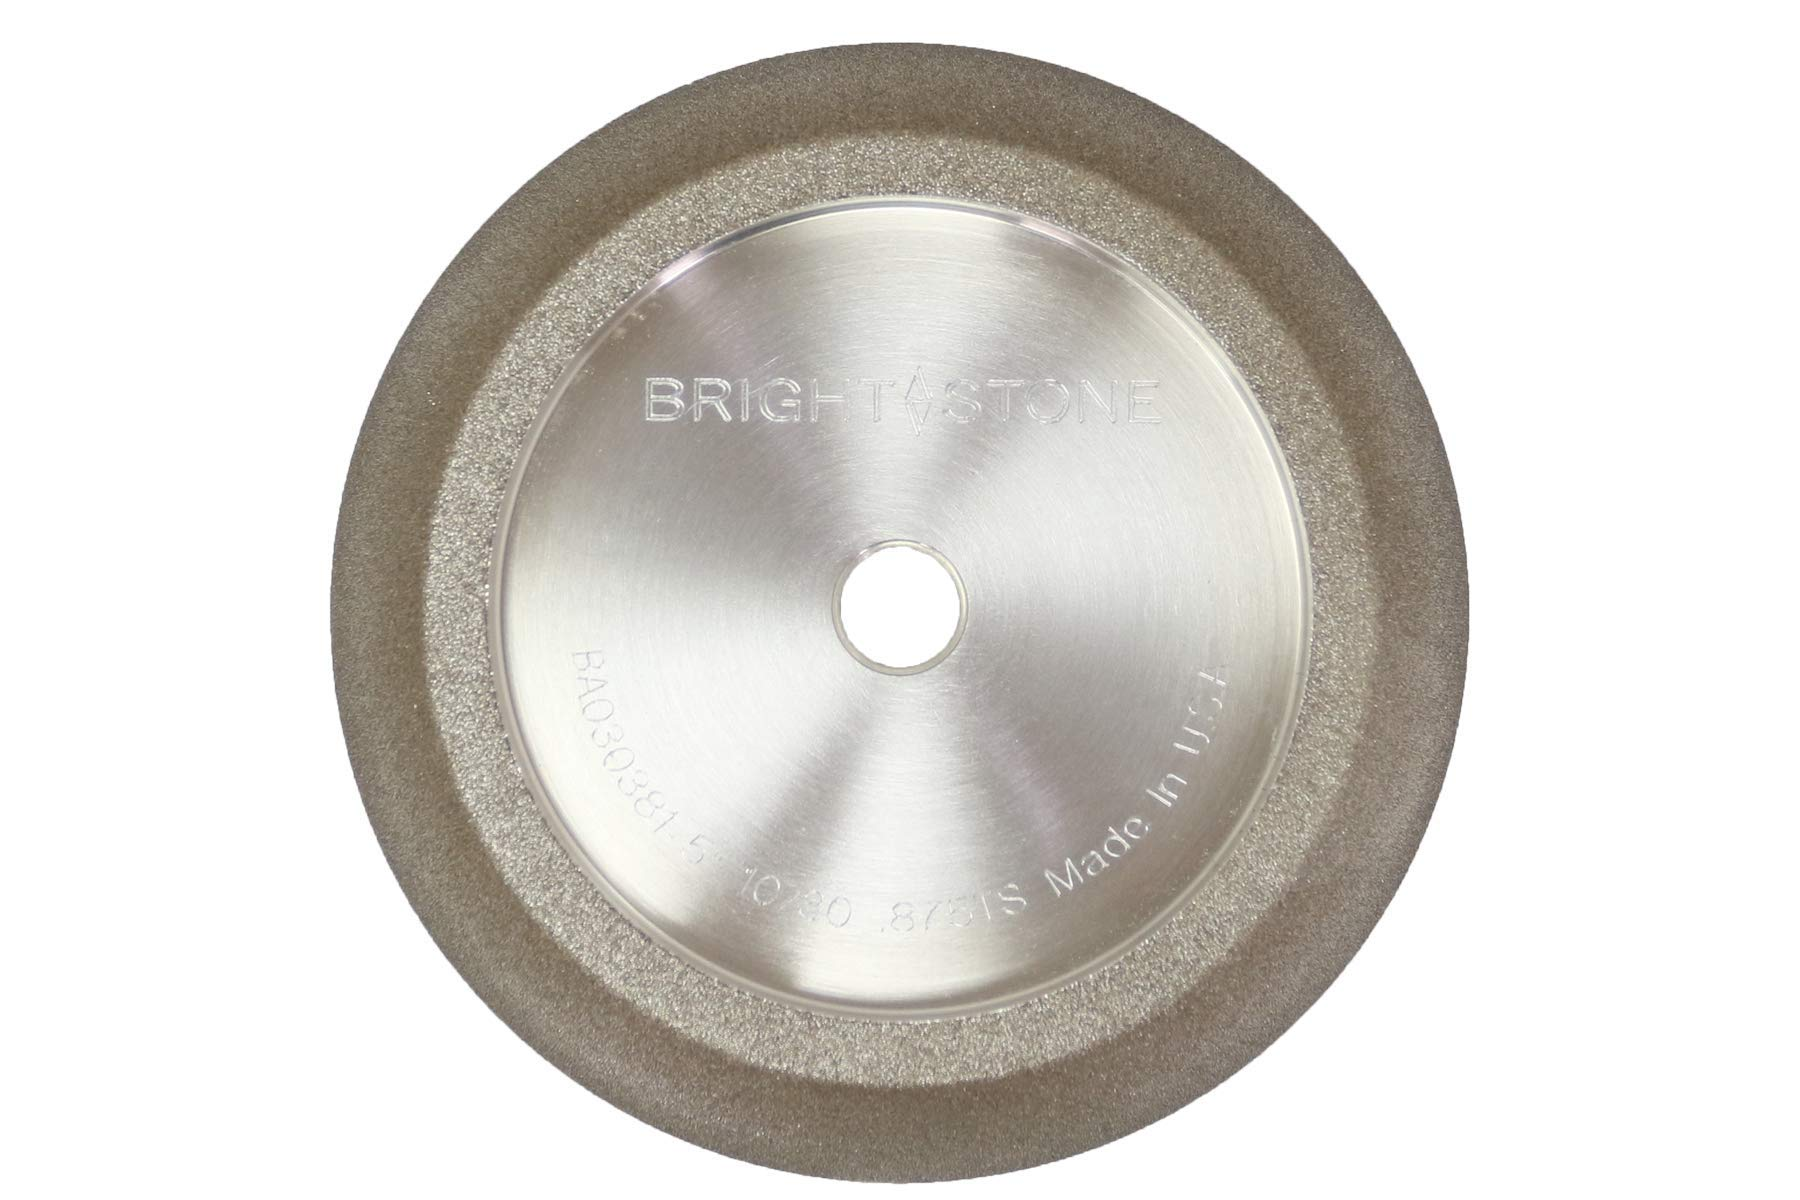 BrightStone 5 Inch CBN Grinding Wheel, 10/30 Angle, 3/4'' Tooth Spacing